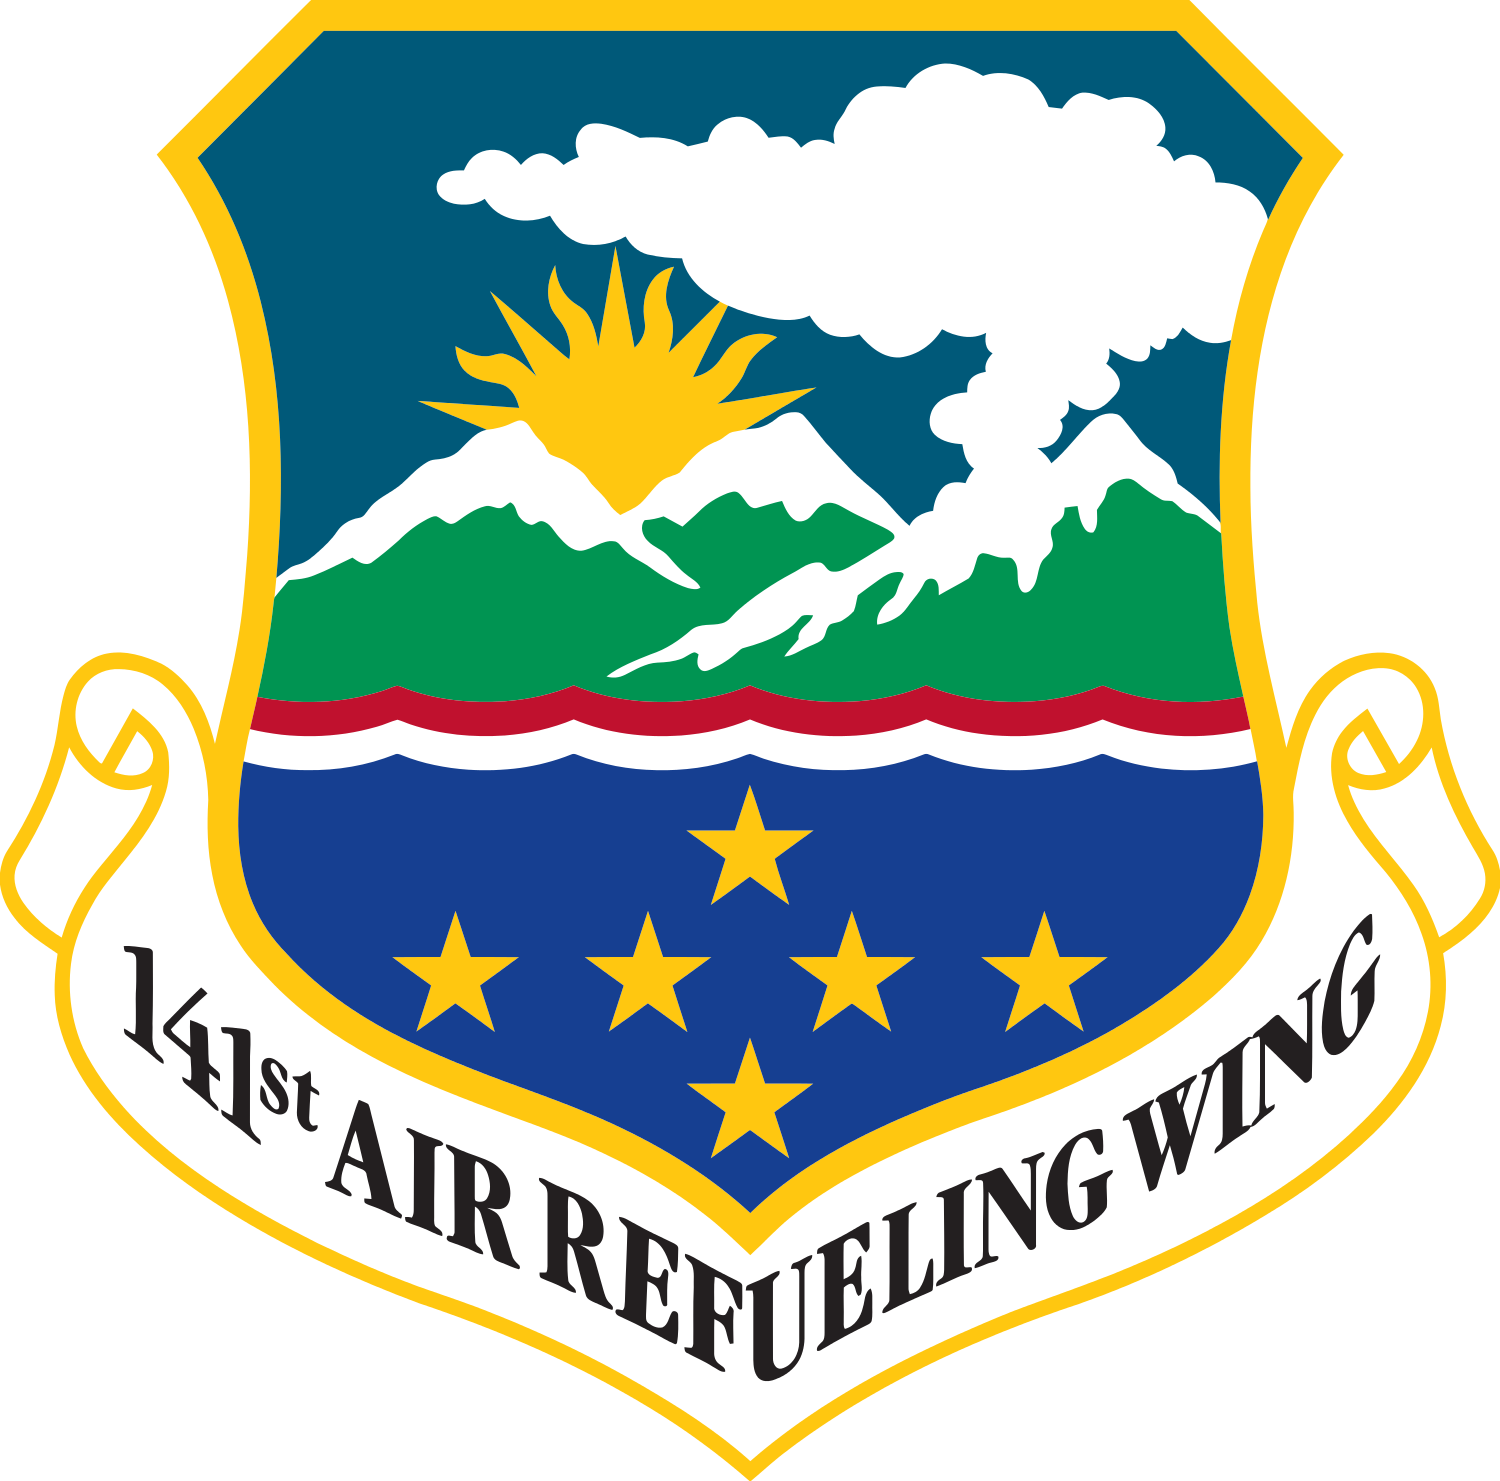 141st Air Refueling Wing Military Flag Military Insignia Air Force Patches